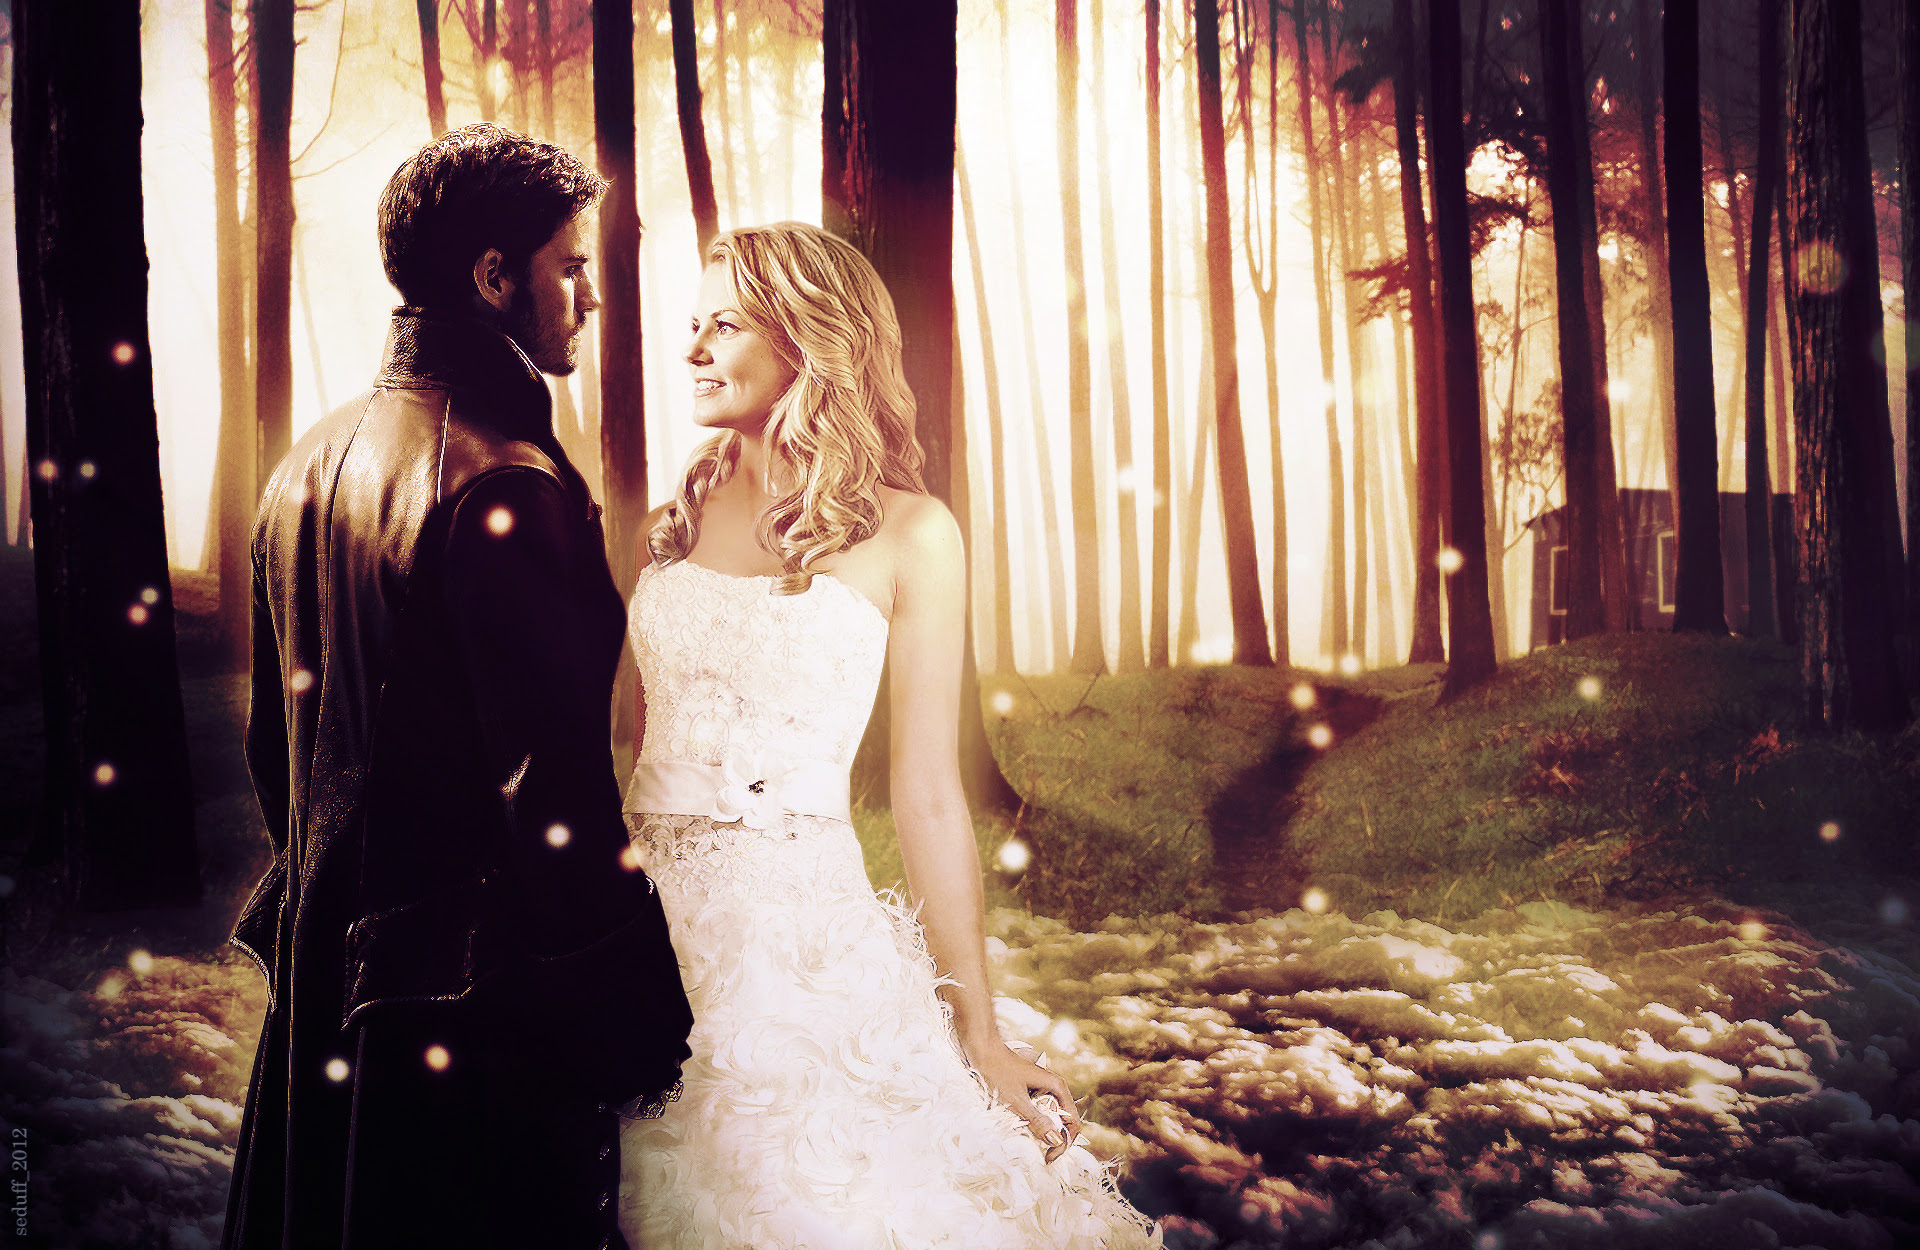 Hook Emma Once Upon A Time